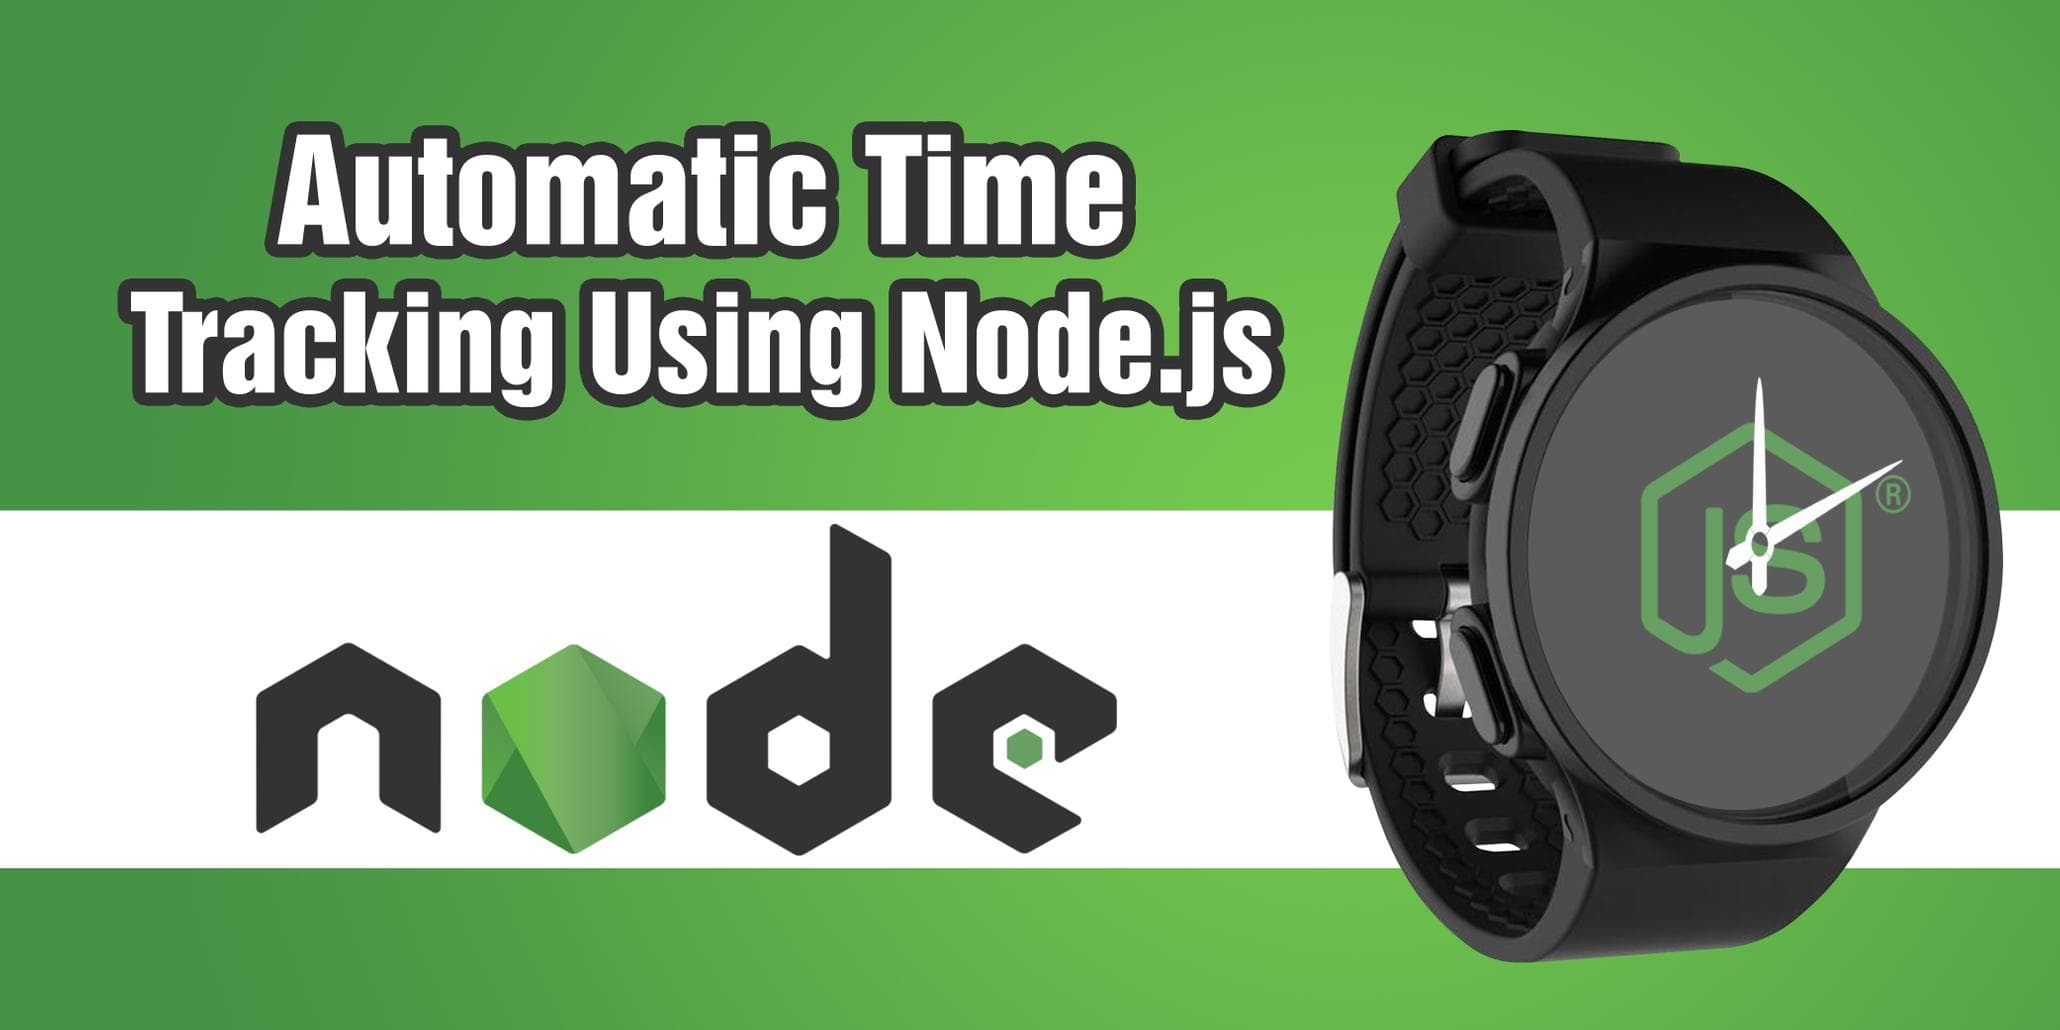 Automatic Time Tracking using Node.js